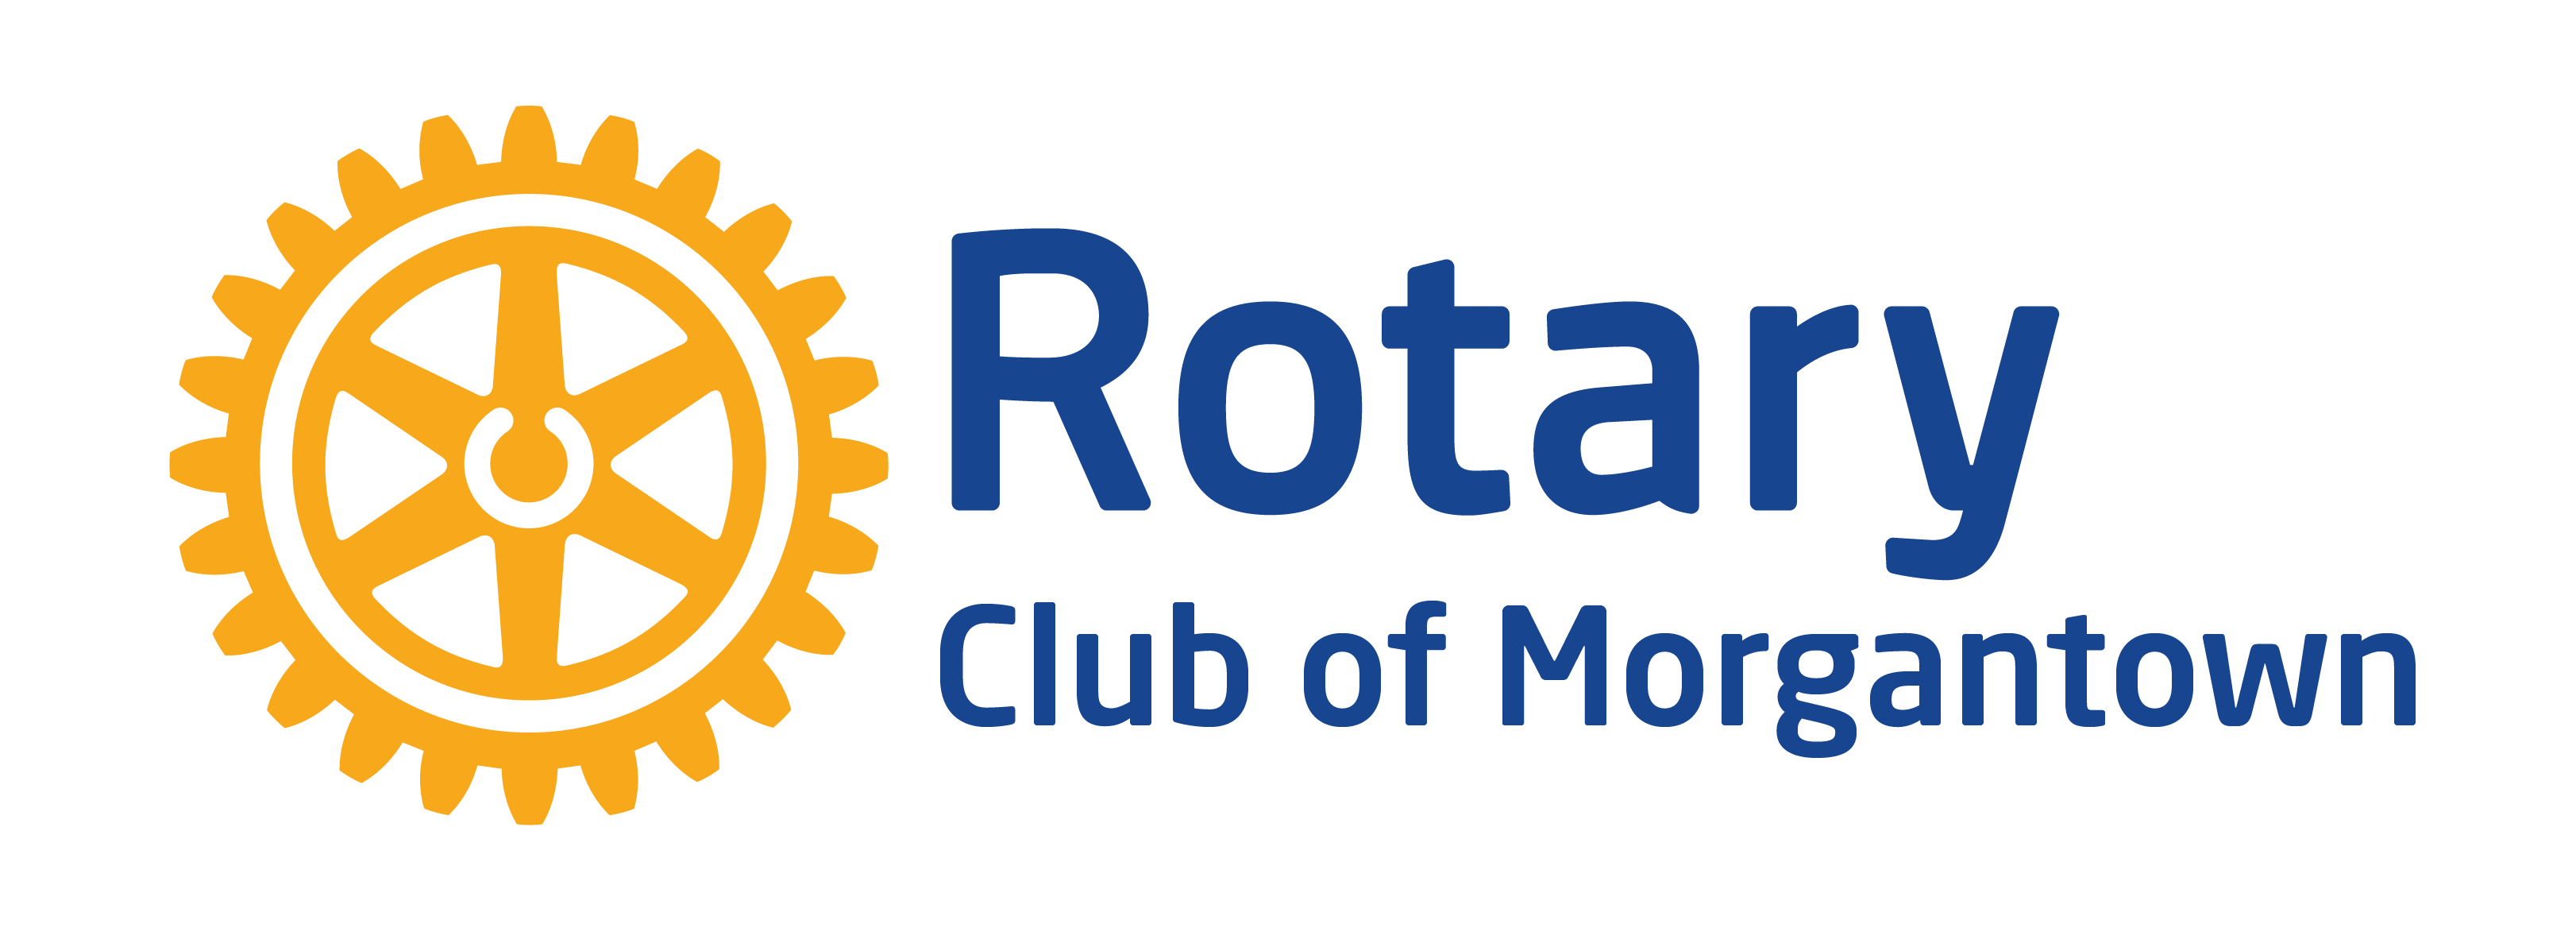 Rotary Club of Morgantown